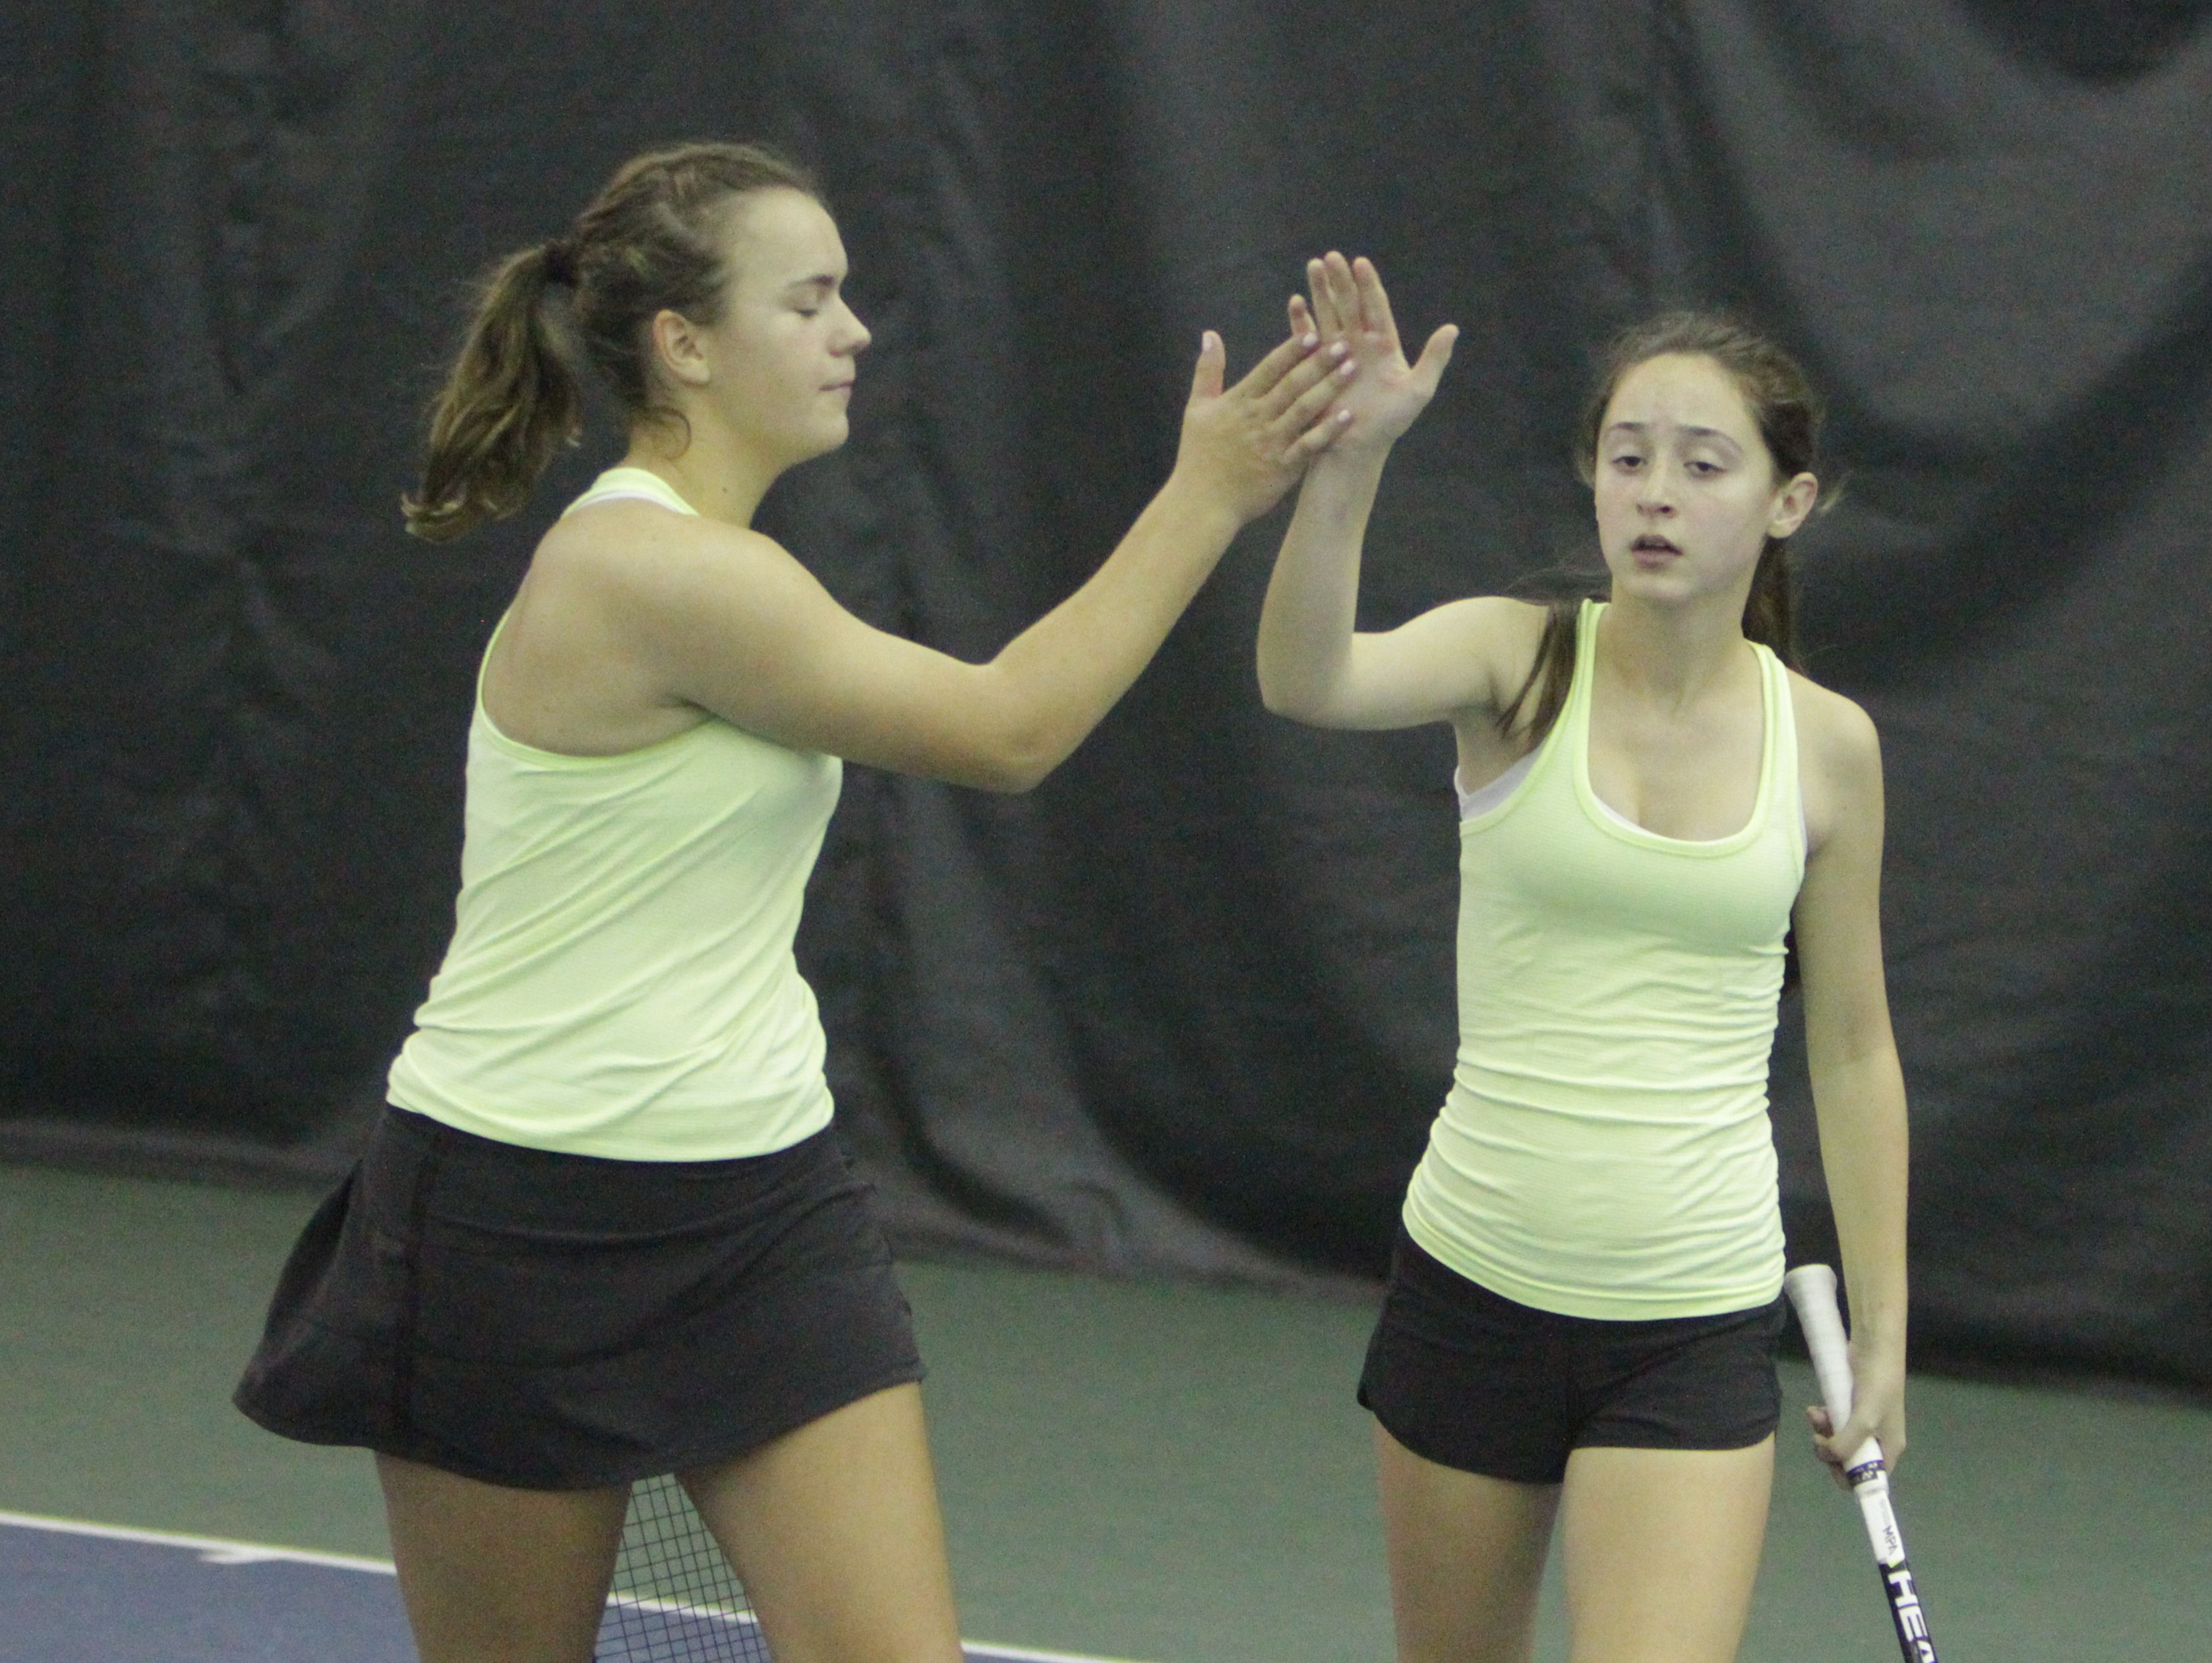 Clarkstown North's Martyna Czarnik (left) and Sydney Miller celebrate after winning a quarterfinal match at the New York State girls tennis tournament at Sound Shore Indoor Tennis in Port Chester on Sunday, Oct. 30th, 2016.